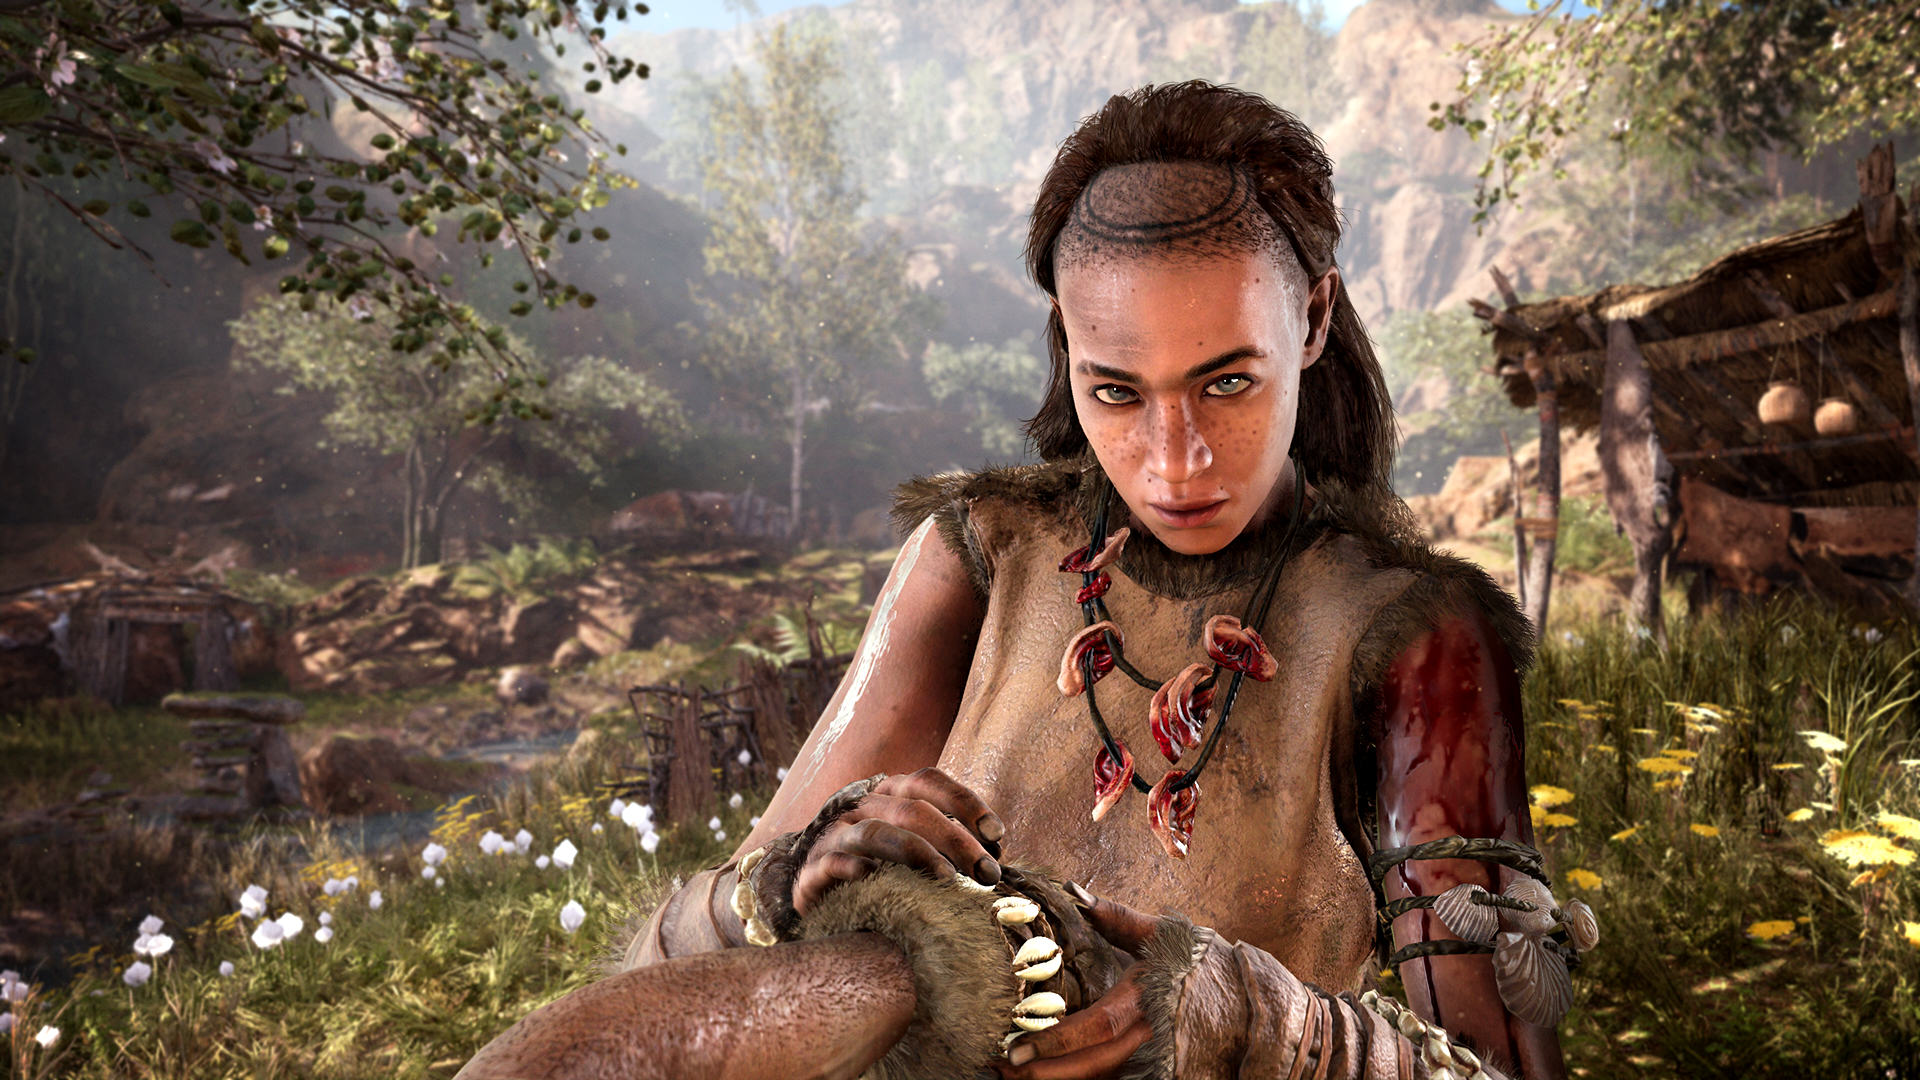 FCP 02 Gatherer Screenshots PREVIEW PR 160126 6pm CET 1453716678 Far Cry Primal Is Shameless Pre Historic Fun, If A Little Shallow